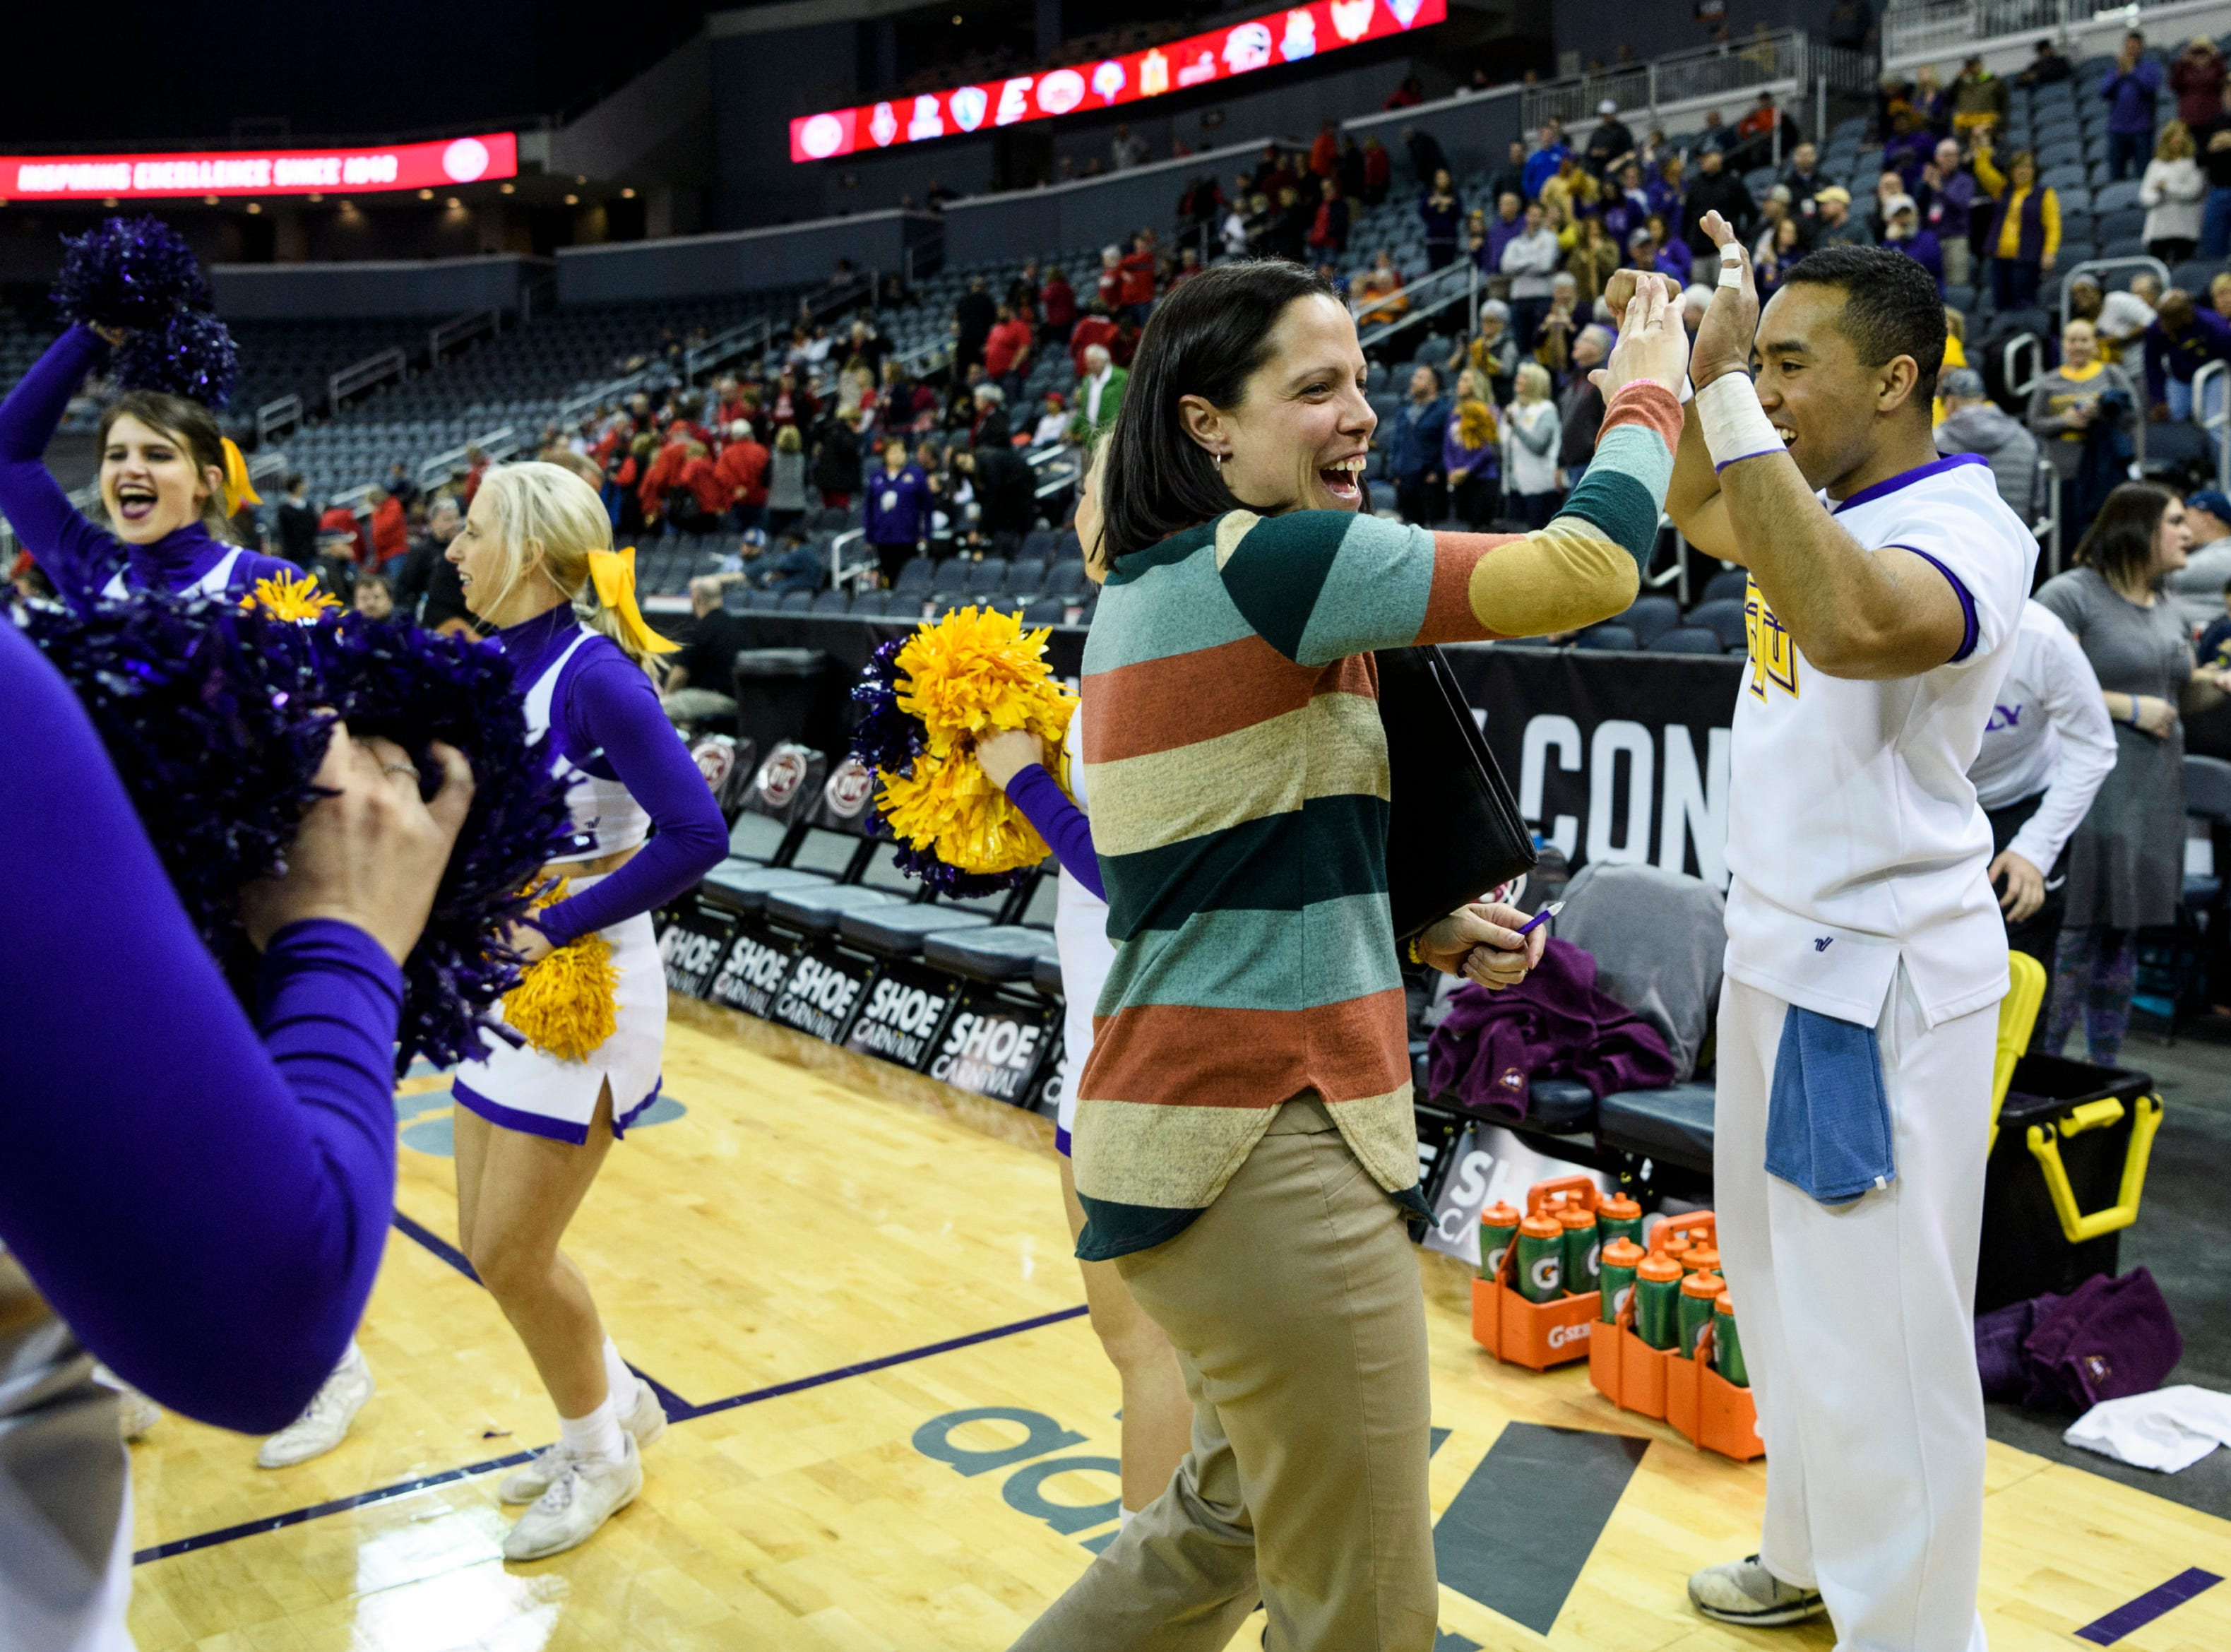 Allison Clark, center, assistant coach for the women's Tennessee Tech basketball team, high-fives the cheerleading team as they celebrate their win over Austin Peay Governors during the Ohio Valley Conference tournament at Ford Center in Evansville, Ind., Thursday, March 7, 2019. The Golden Eagles defeated the Governors, 69-57.